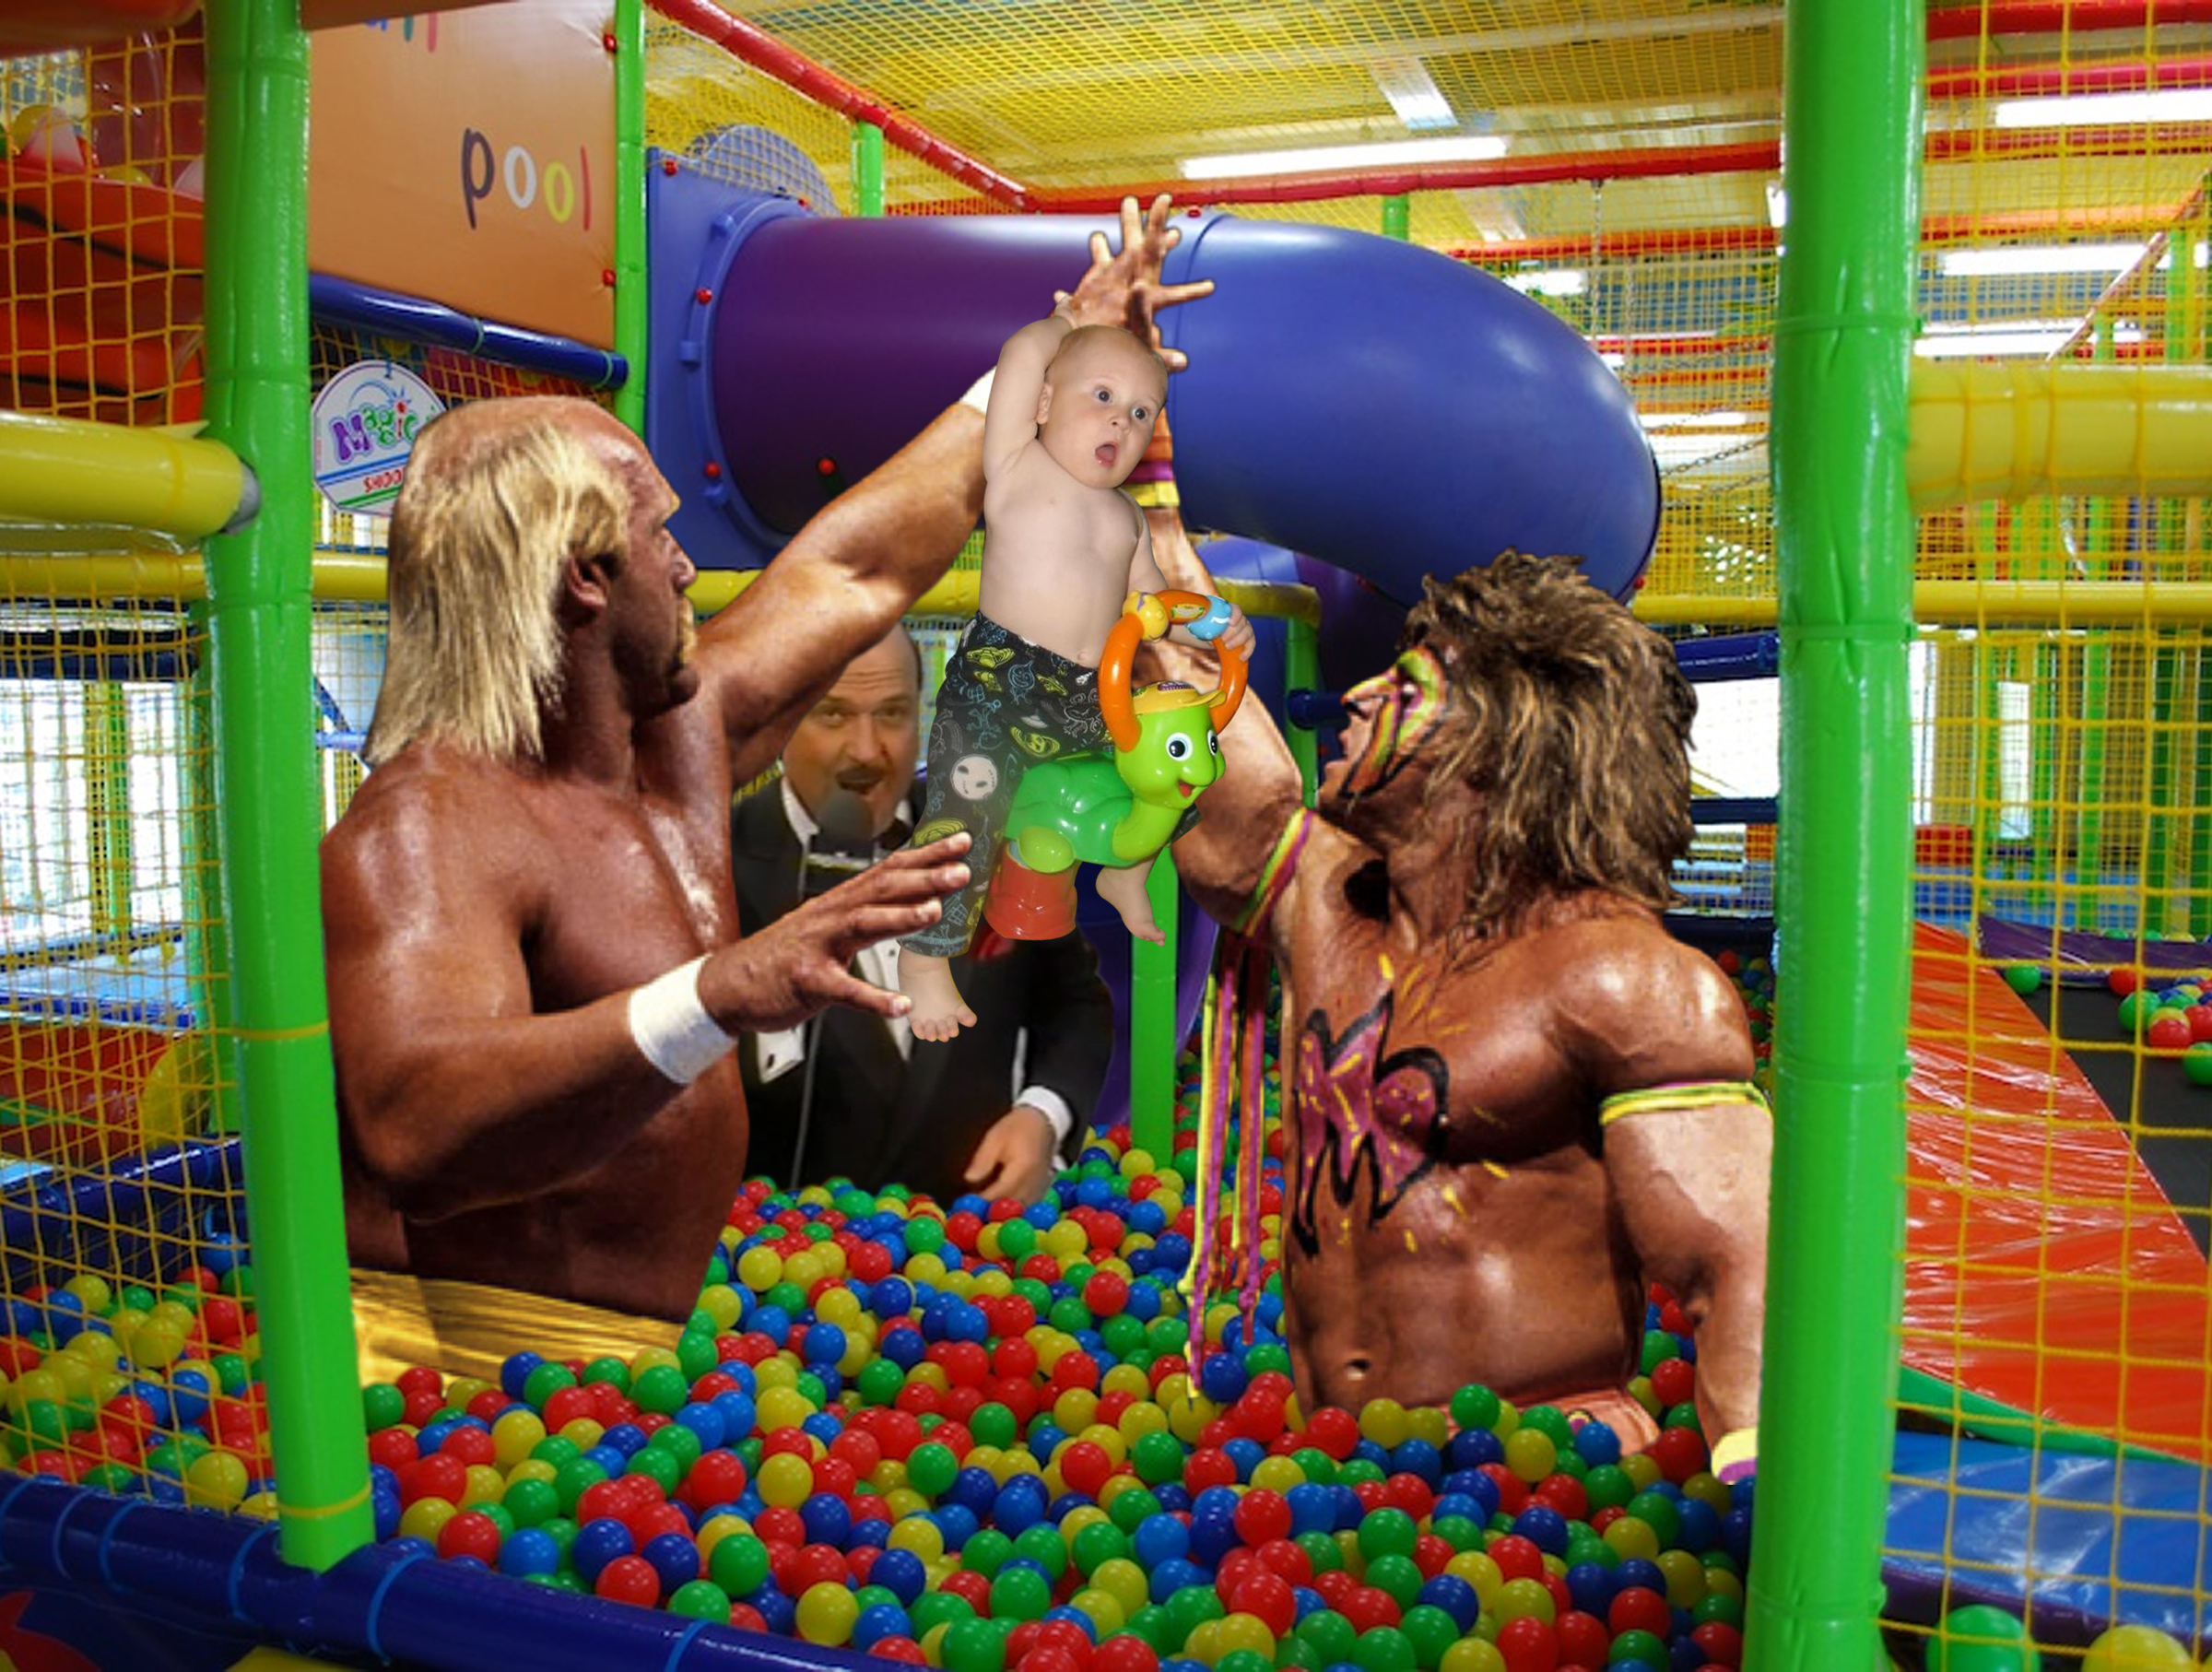 Yes, that is Hulk Hogan, The Ultimate Warrior and Mean Jean Okerlund with a baby in a ball pit...